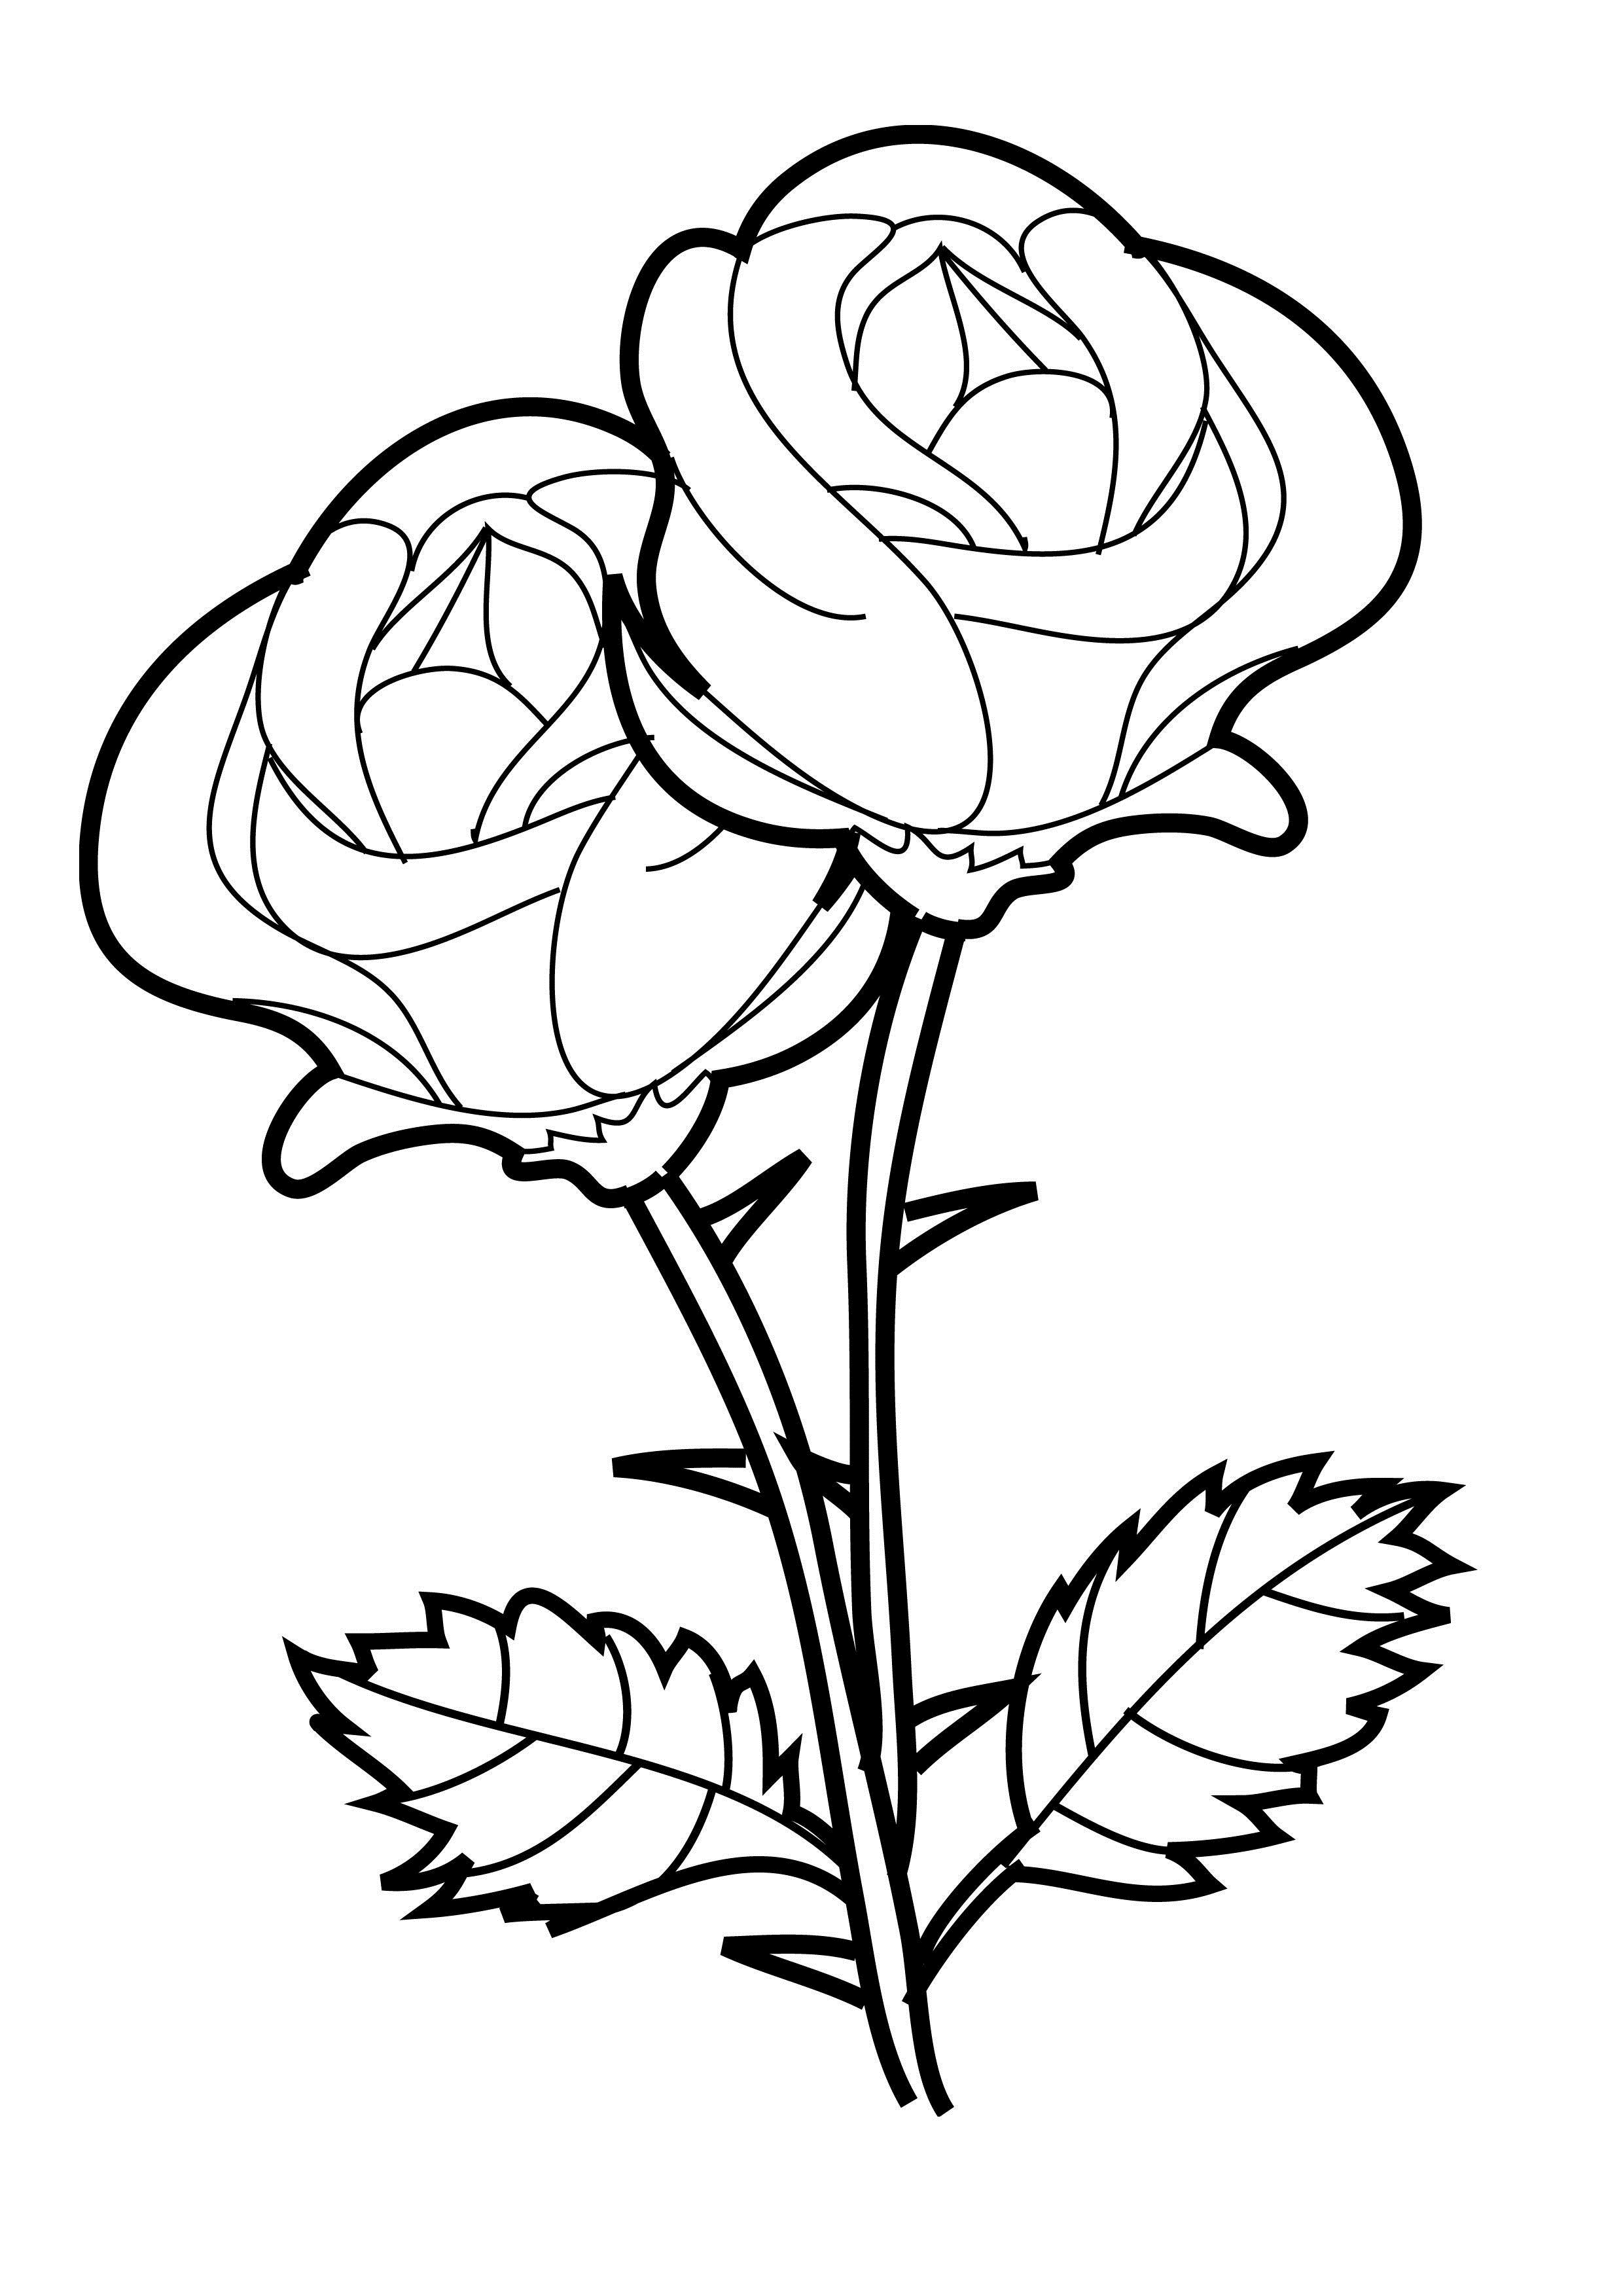 2480x3508 Free Printable Roses Coloring Pages For Kids